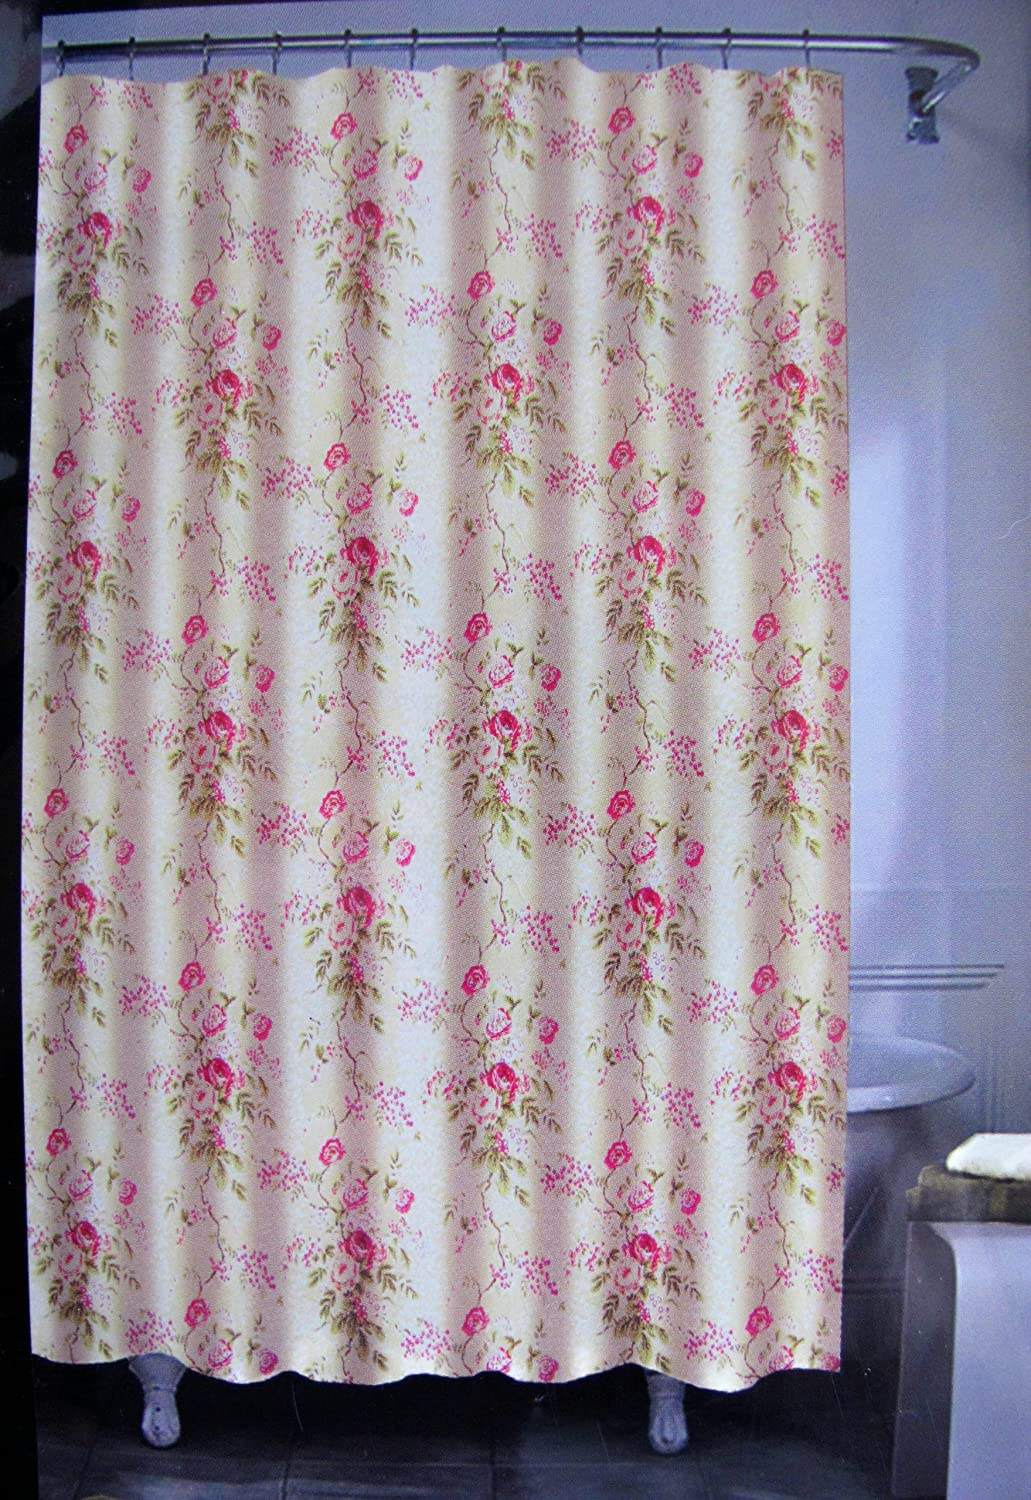 shower walmart roses com curtain ip curtains prelude